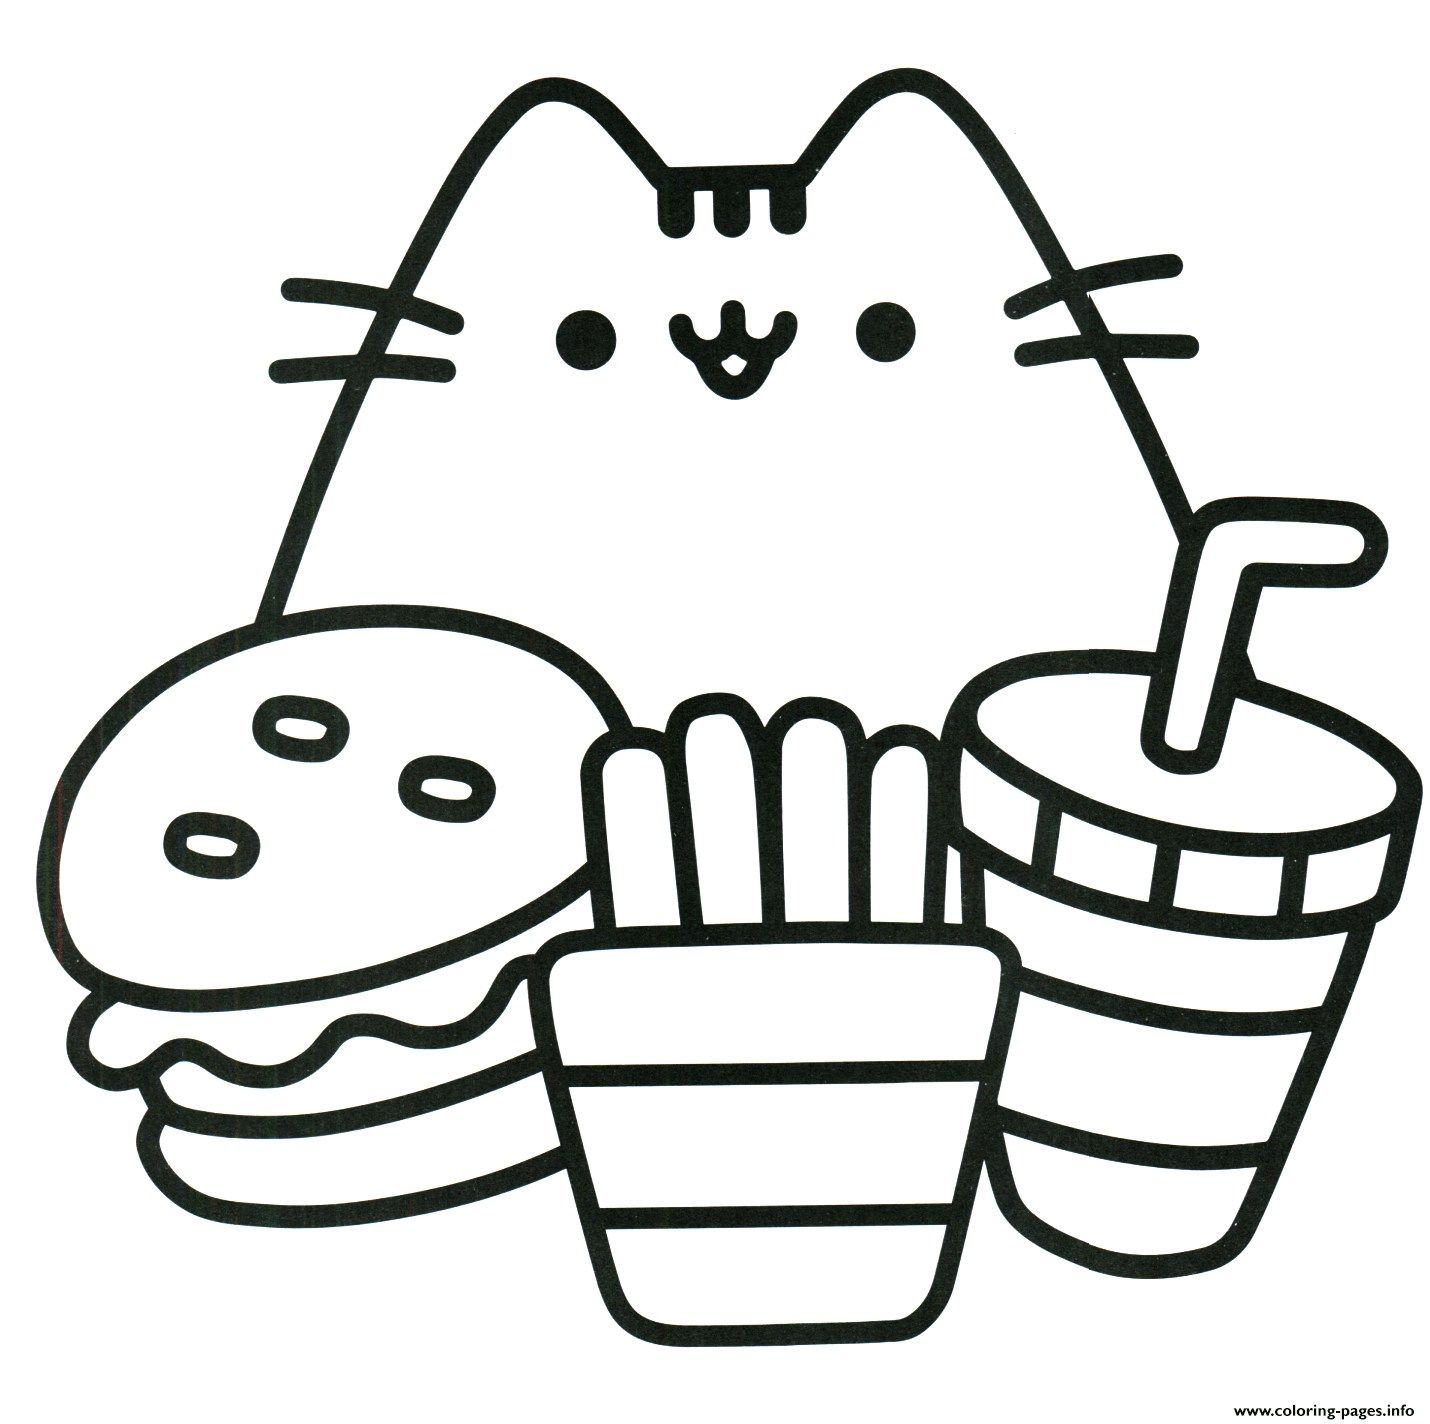 22 Awesome Image Of Food Coloring Pages Pusheen Coloring Pages